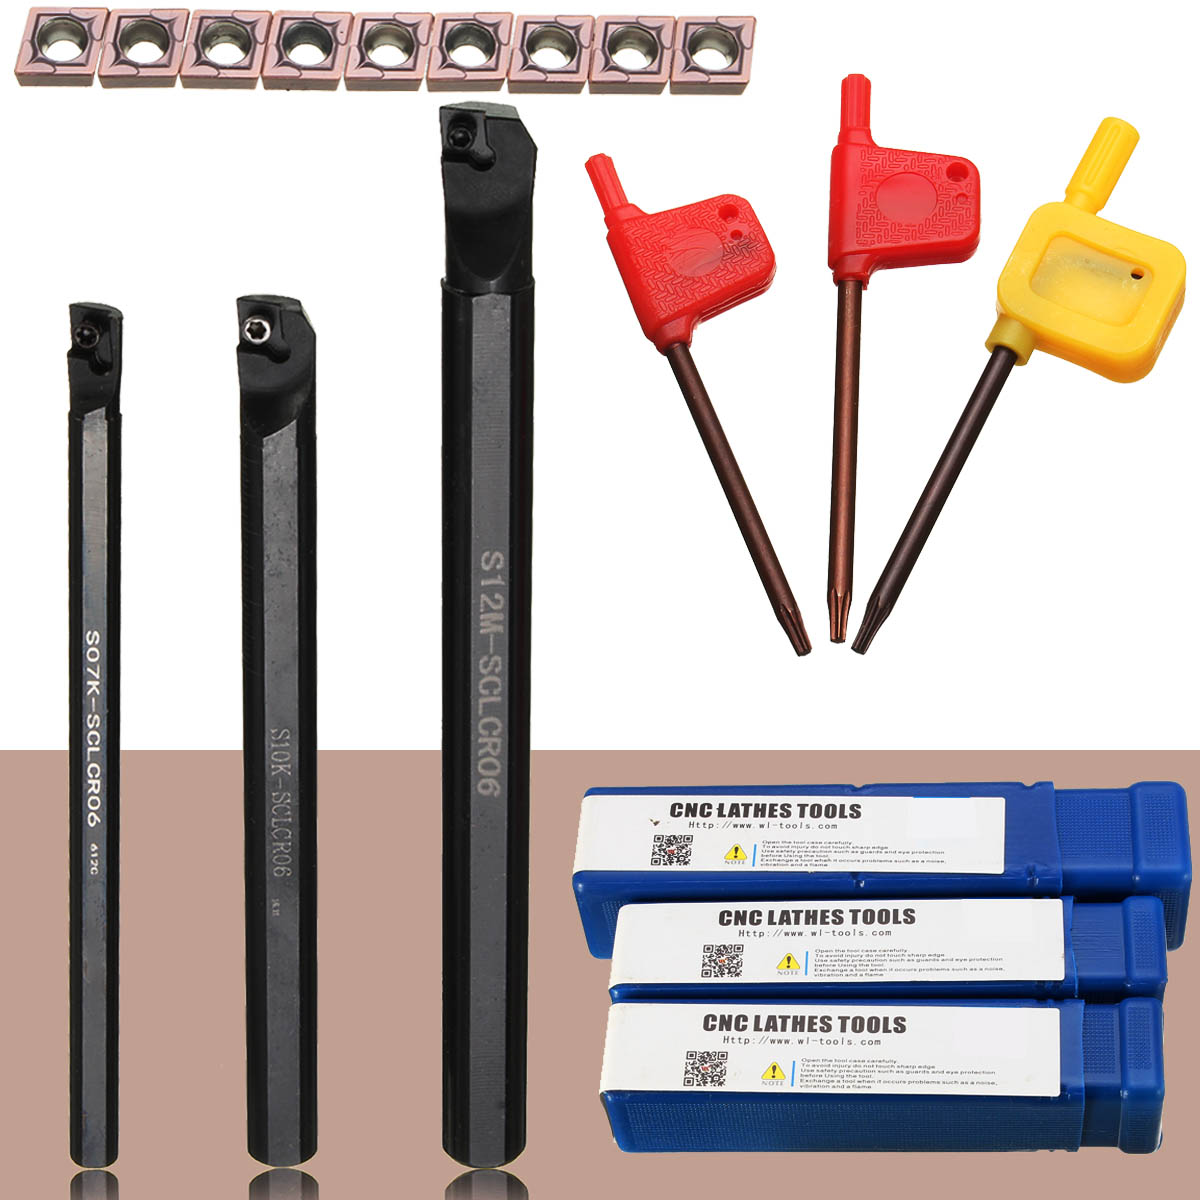 1pcs S07K SCLCR06+1pcs S10K SCLCR06+1pcs S12M SCLCR06 Lathe Holder Turning Tool Boring Bar 7/10/12mm + 10pcs CCMT0602 Inserts-in Turning Tool from Tools on Aliexpress.com | Alibaba Group